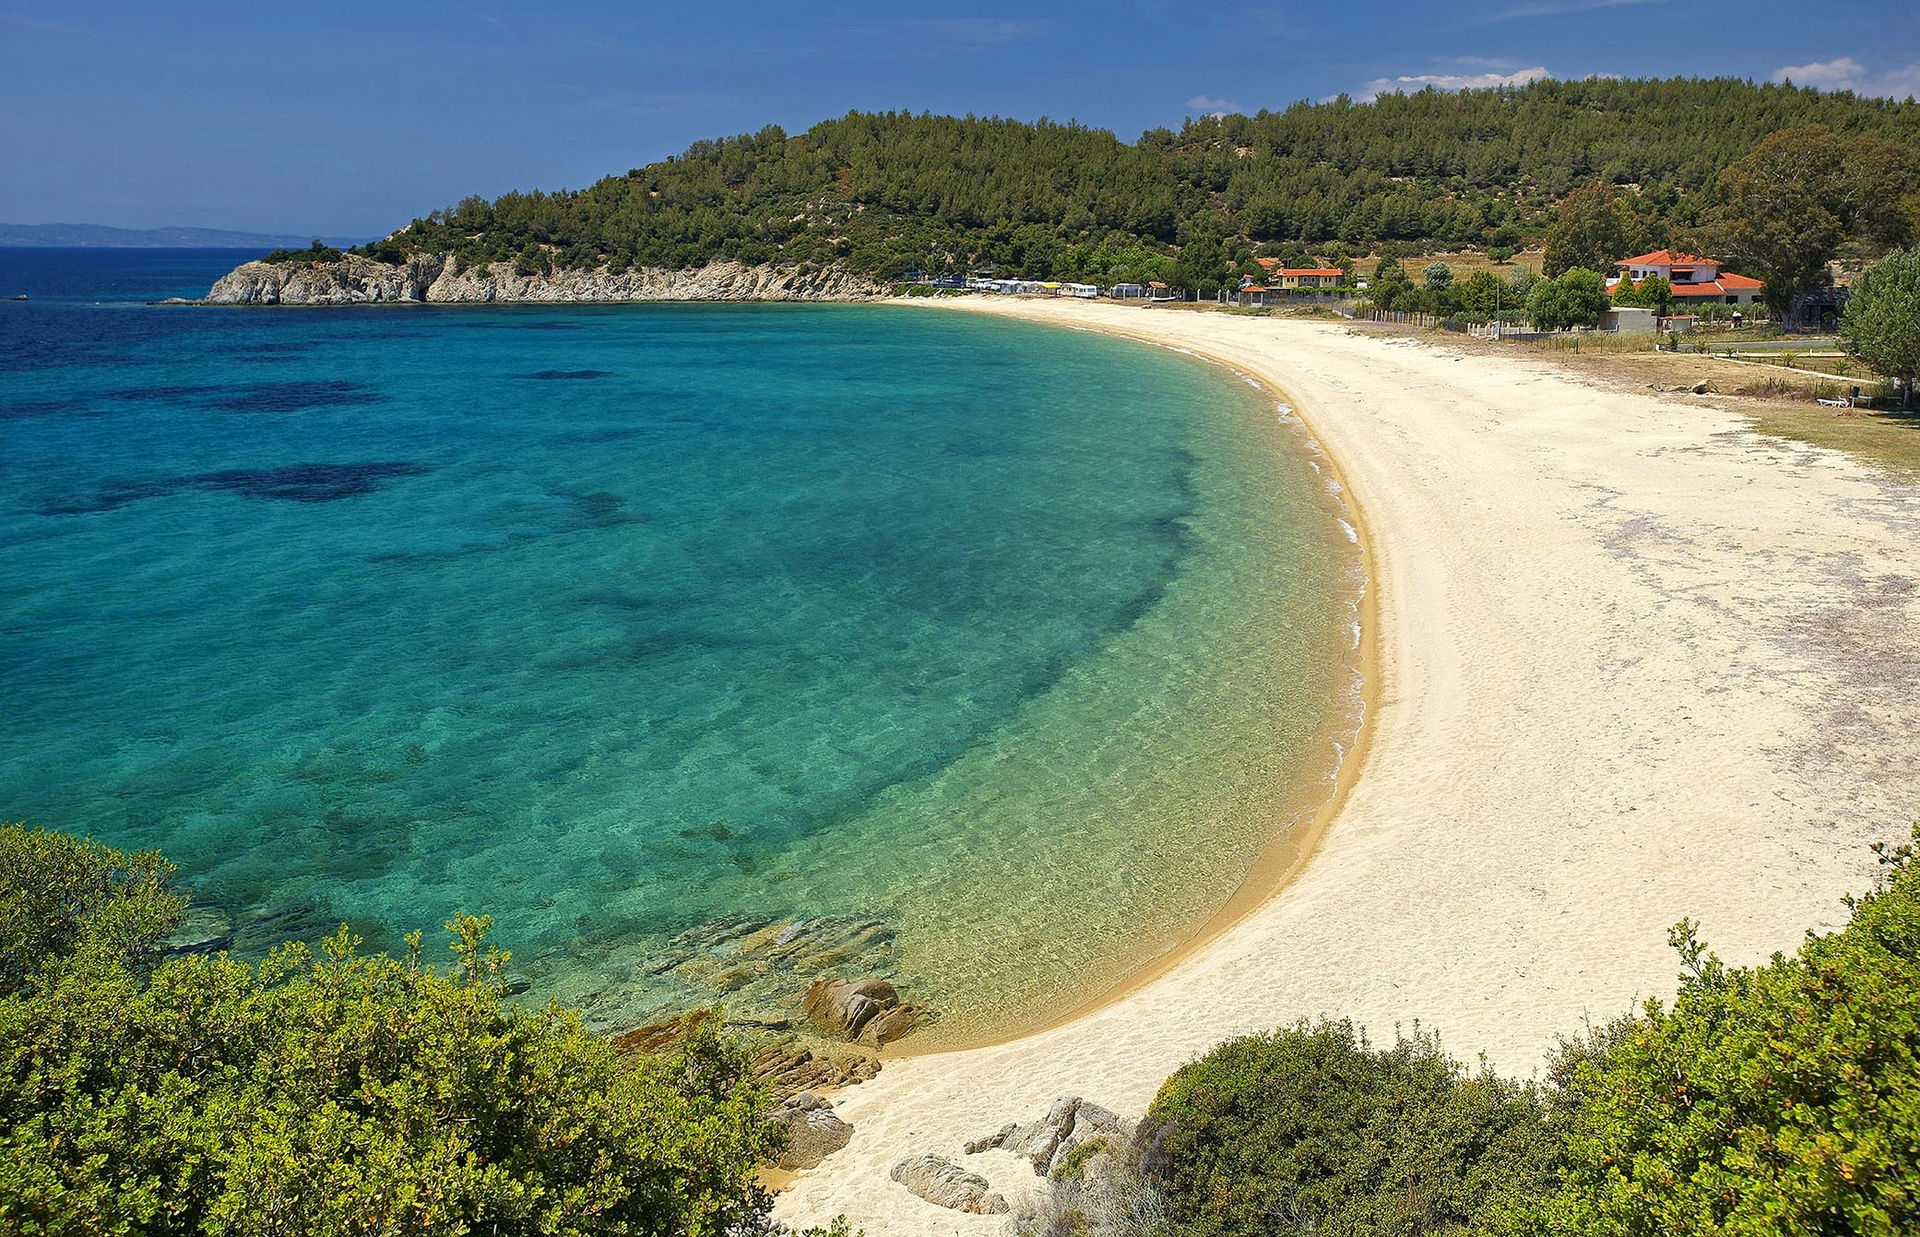 Crystal-clear turquoise waters, on a heavenly Halkidiki beach